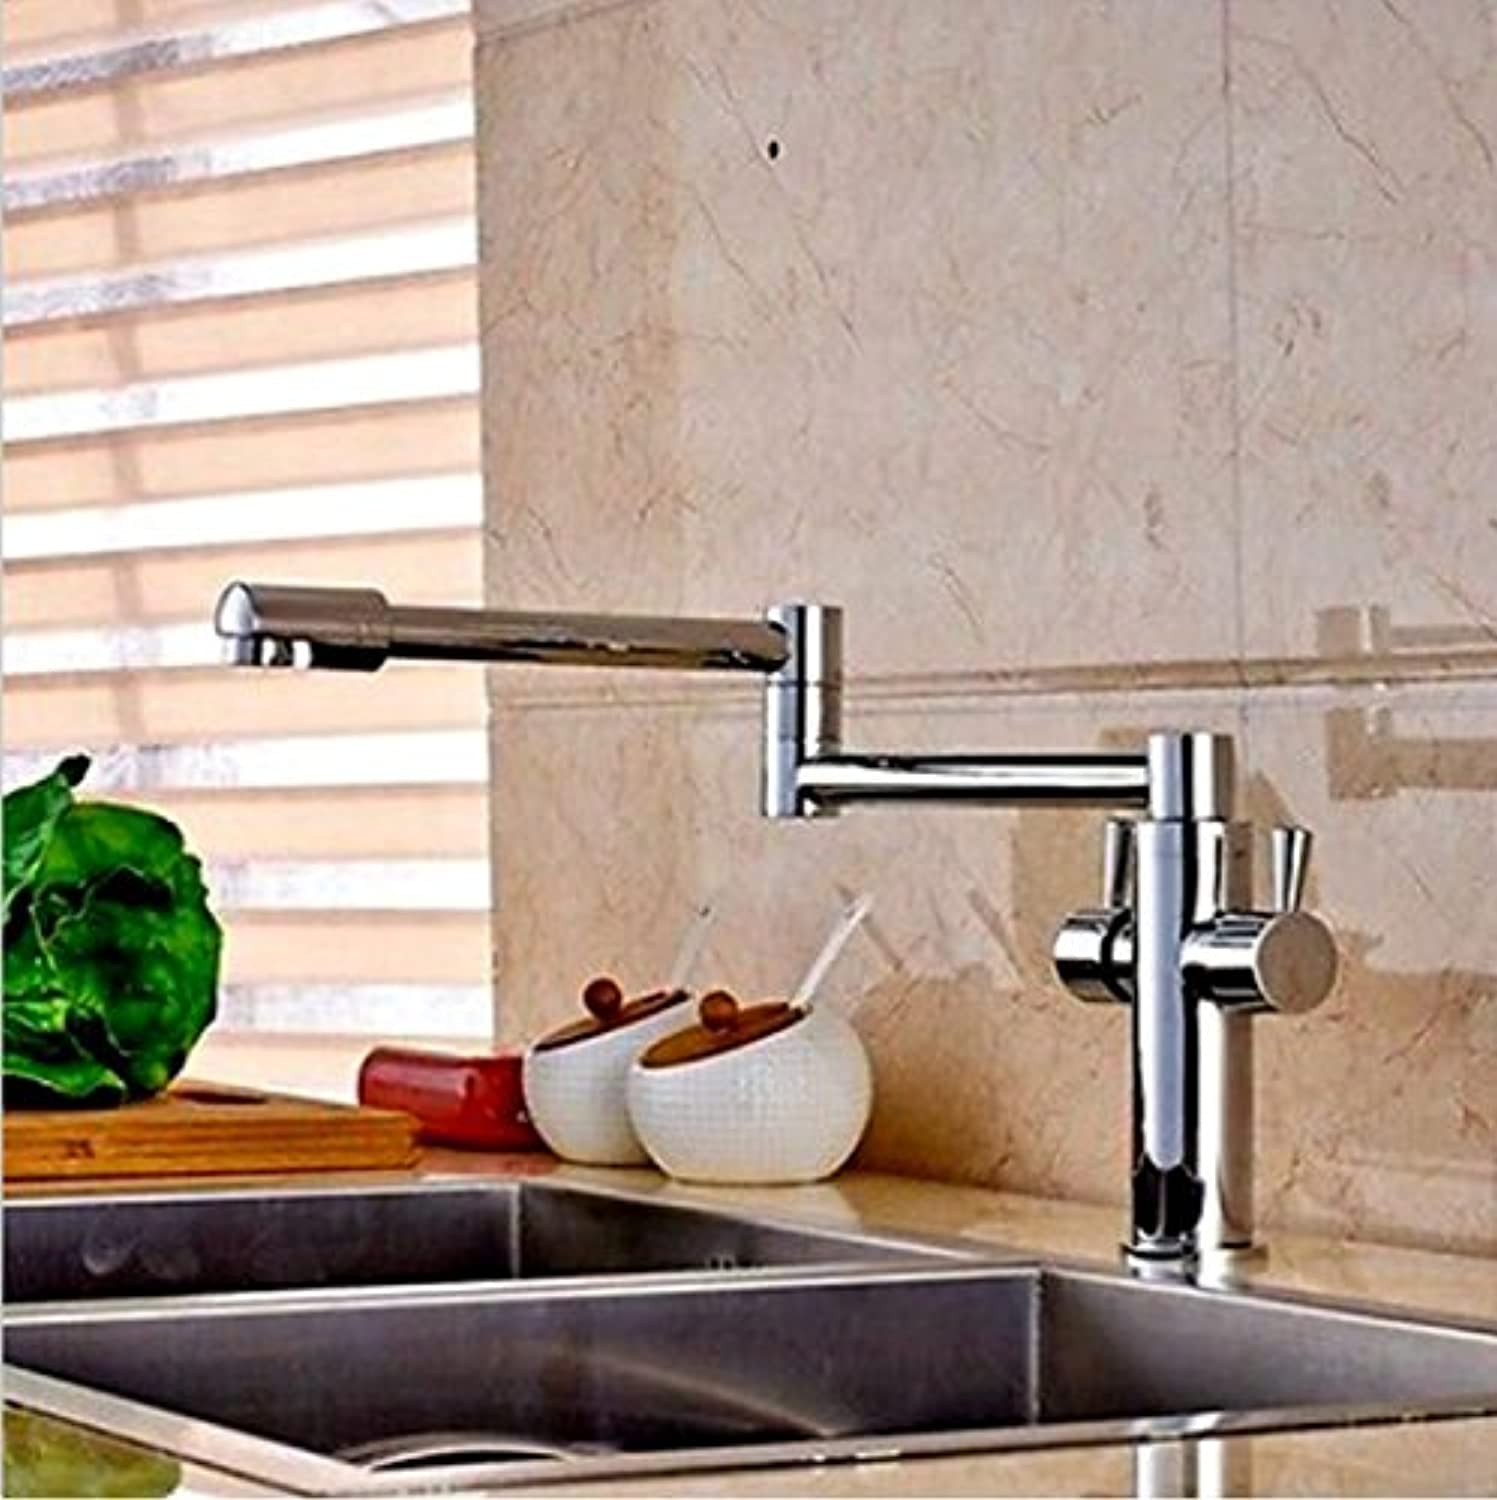 Aawang Deck Mounted Long Spout Extending Kitchen Faucets Chrome Brass Two Handle One Hole Mixer Tap